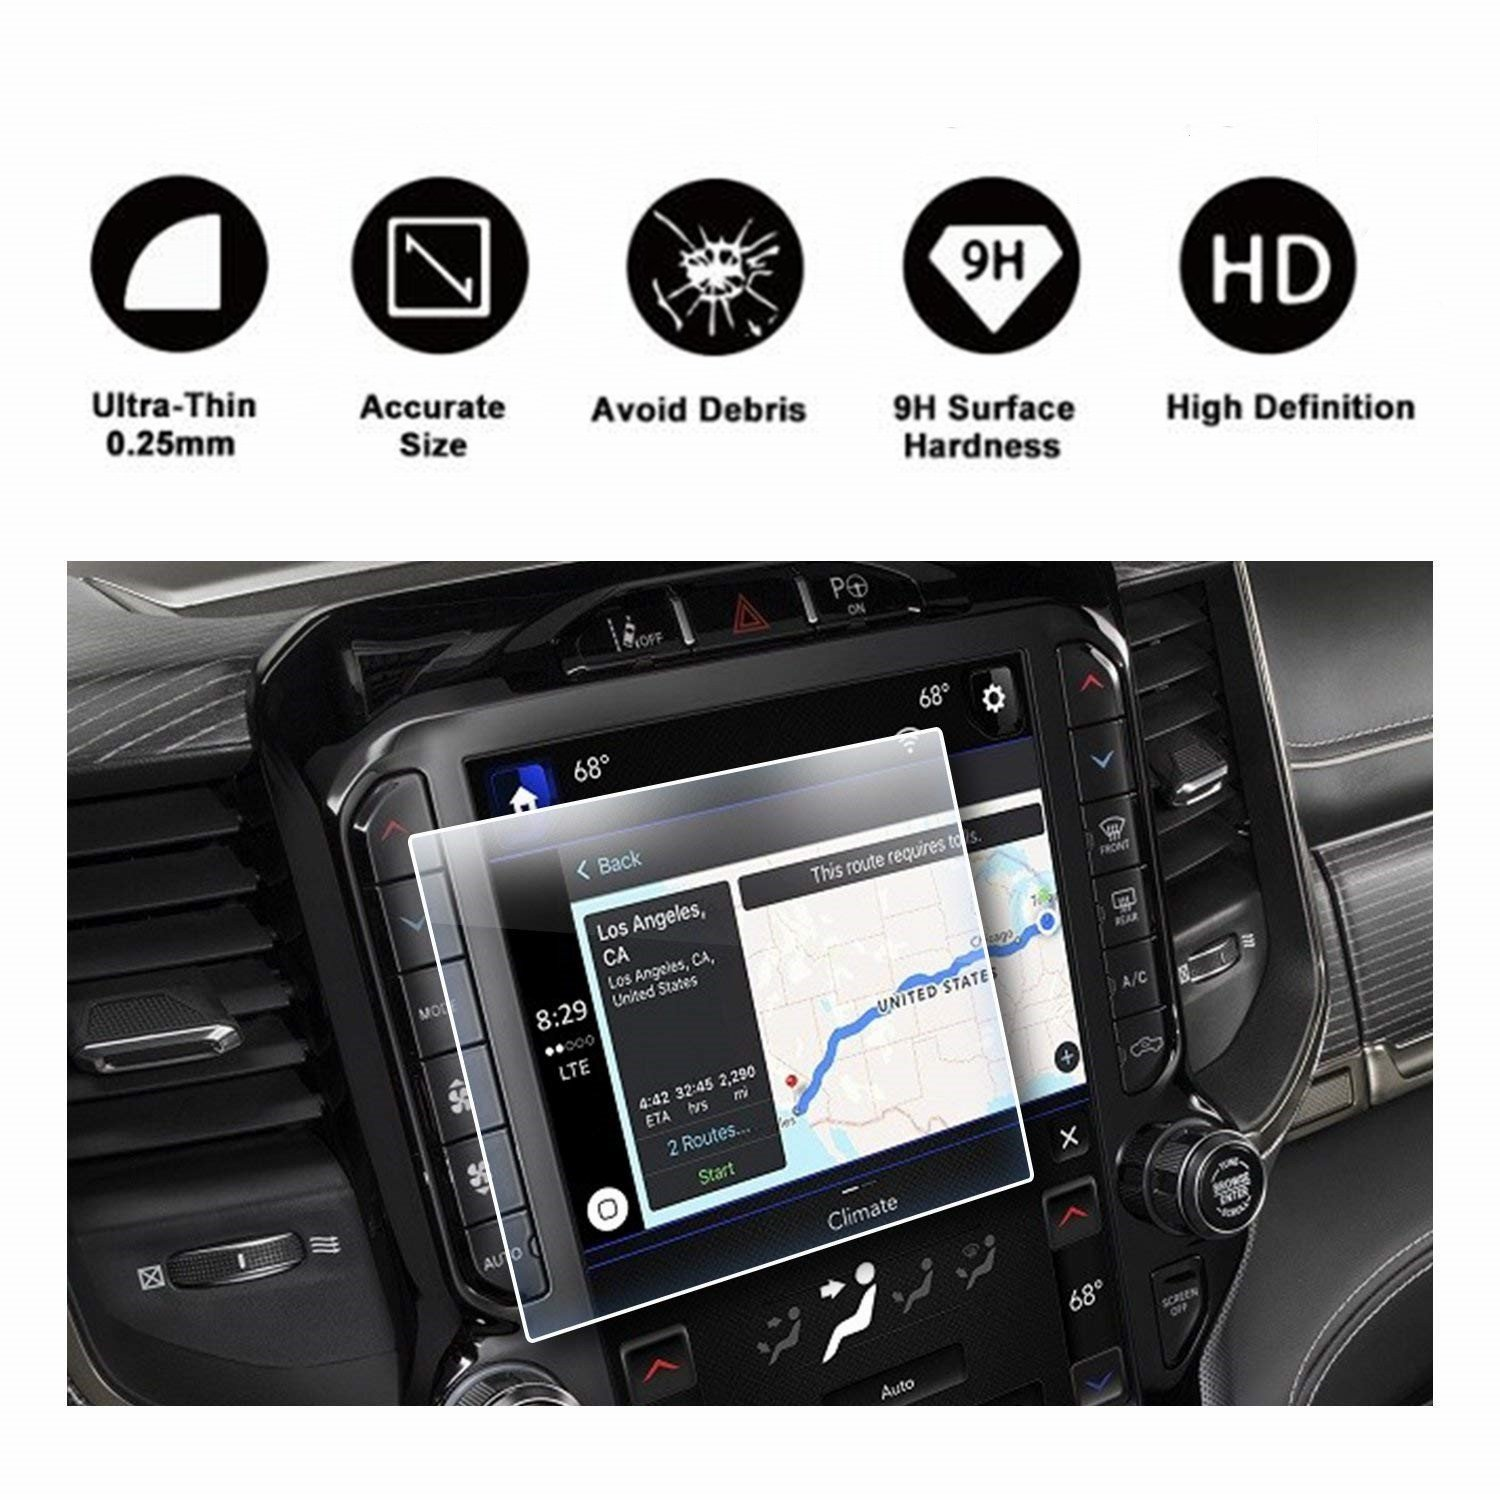 2019 Dodge Ram 1500 Uconnect Touchscreen Car Display Navigation Screen Protector, HD Clear TEMPERED GLASS Protective Film Against Scratch High Clarity (8.4 Inch)